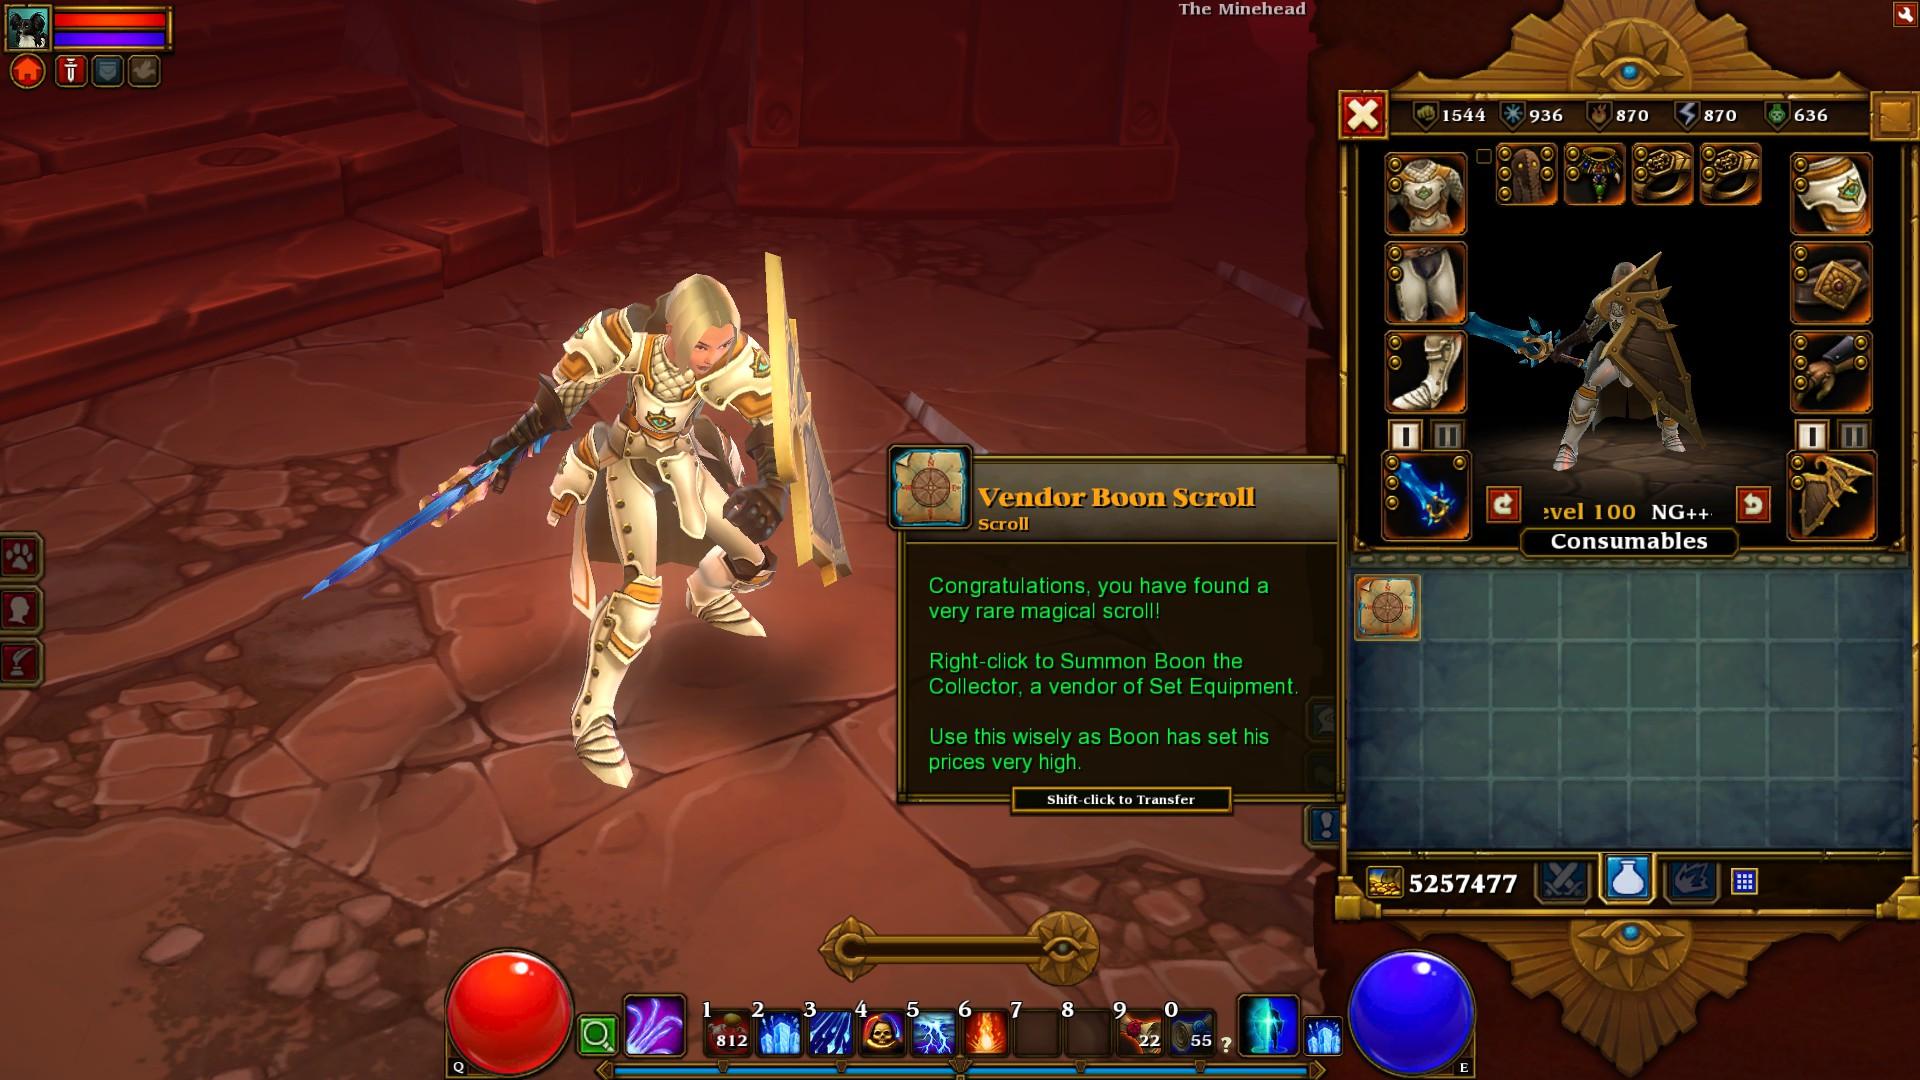 Drawn weapon torchlight 2 His Guide completely Boon's If